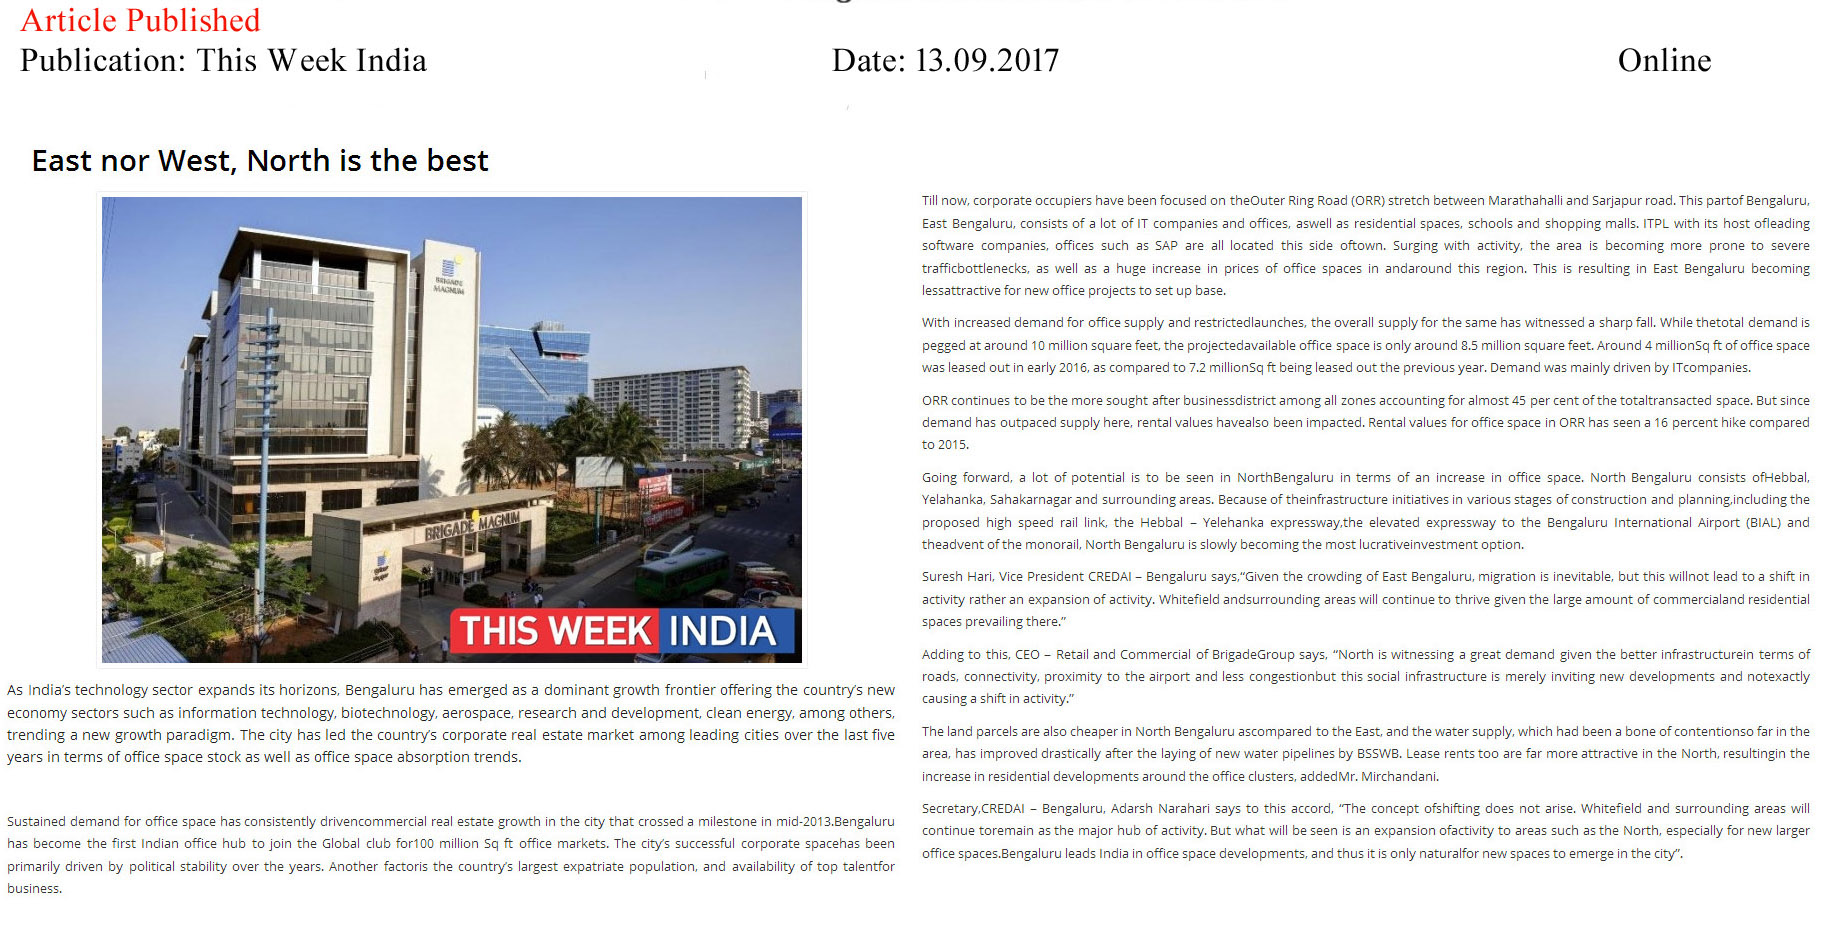 East nor West, North is the best—This Week India–Online